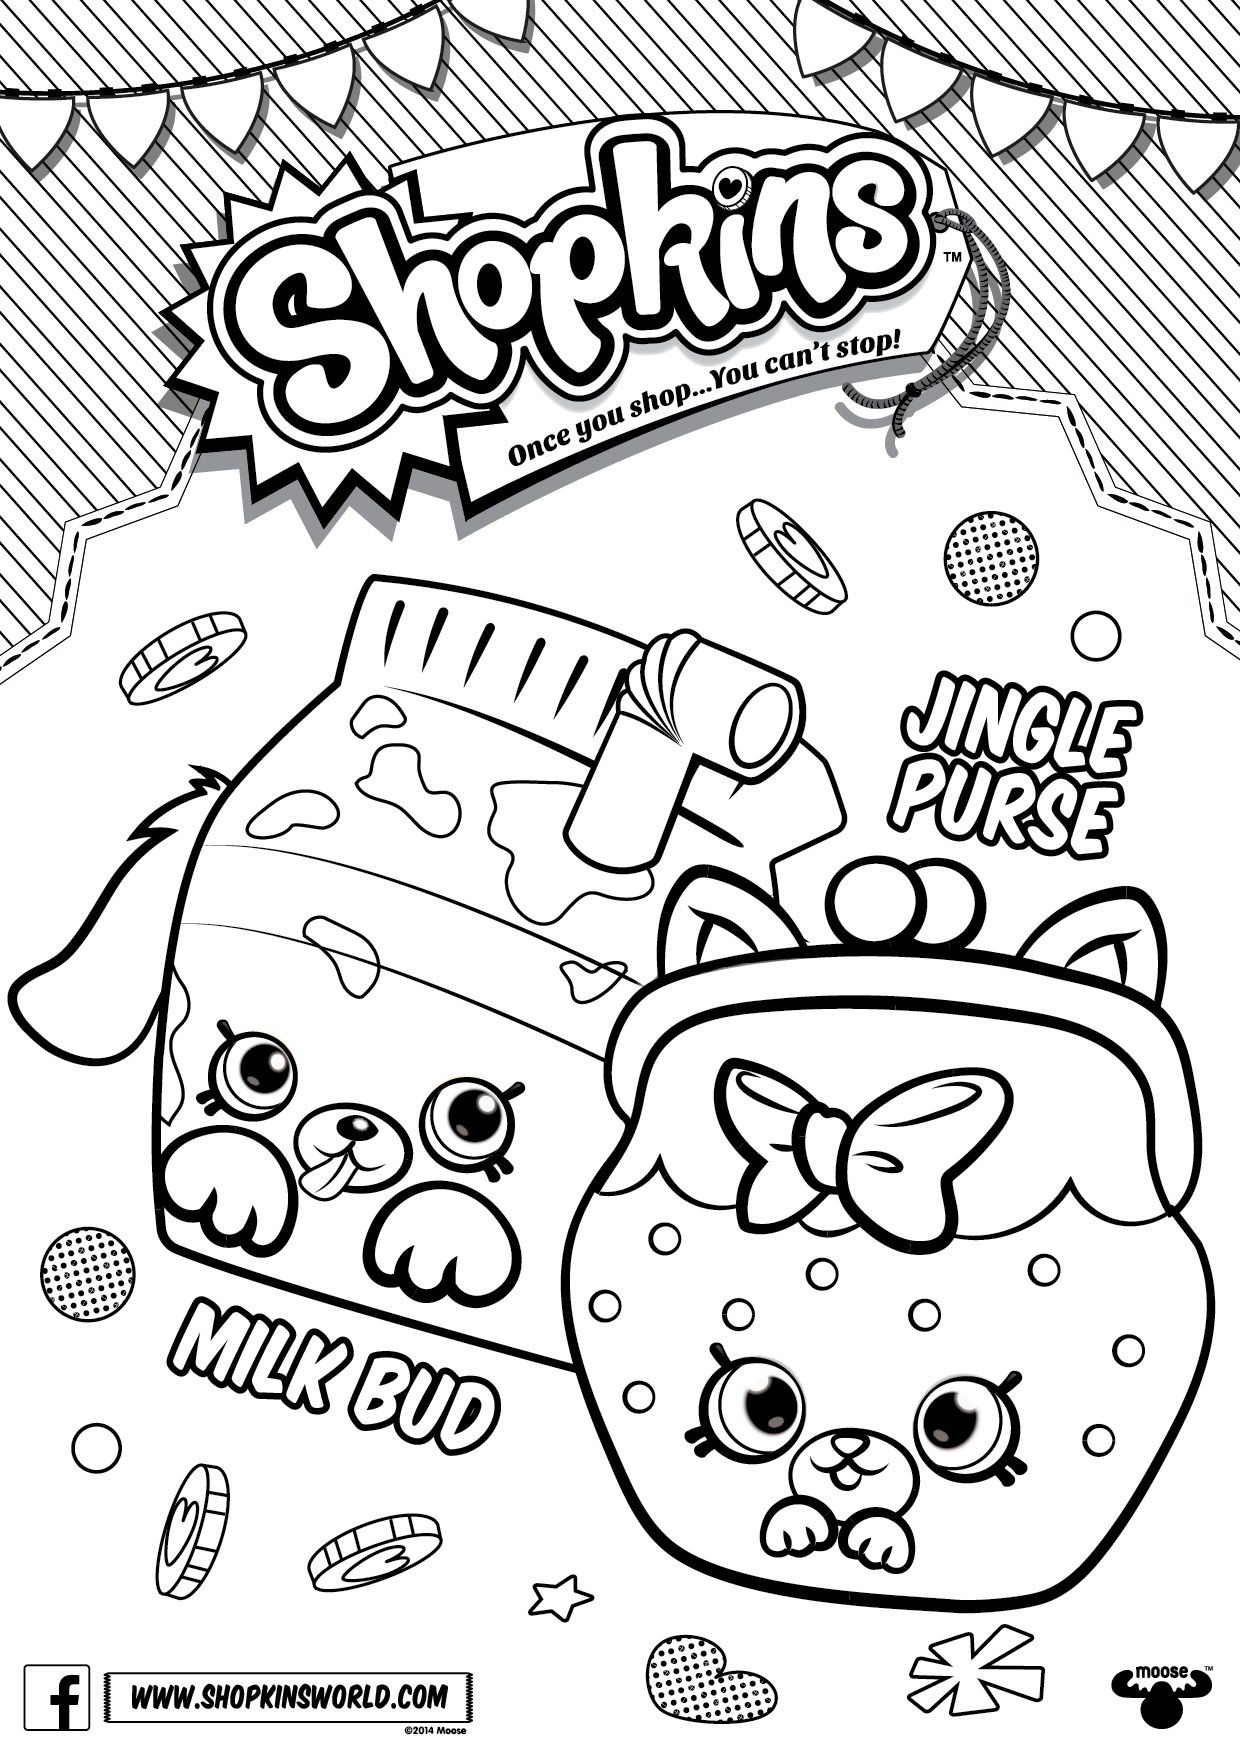 Pe Ins S Hopkins Coloring Pages Shopkin Pet Coloring Pages Free